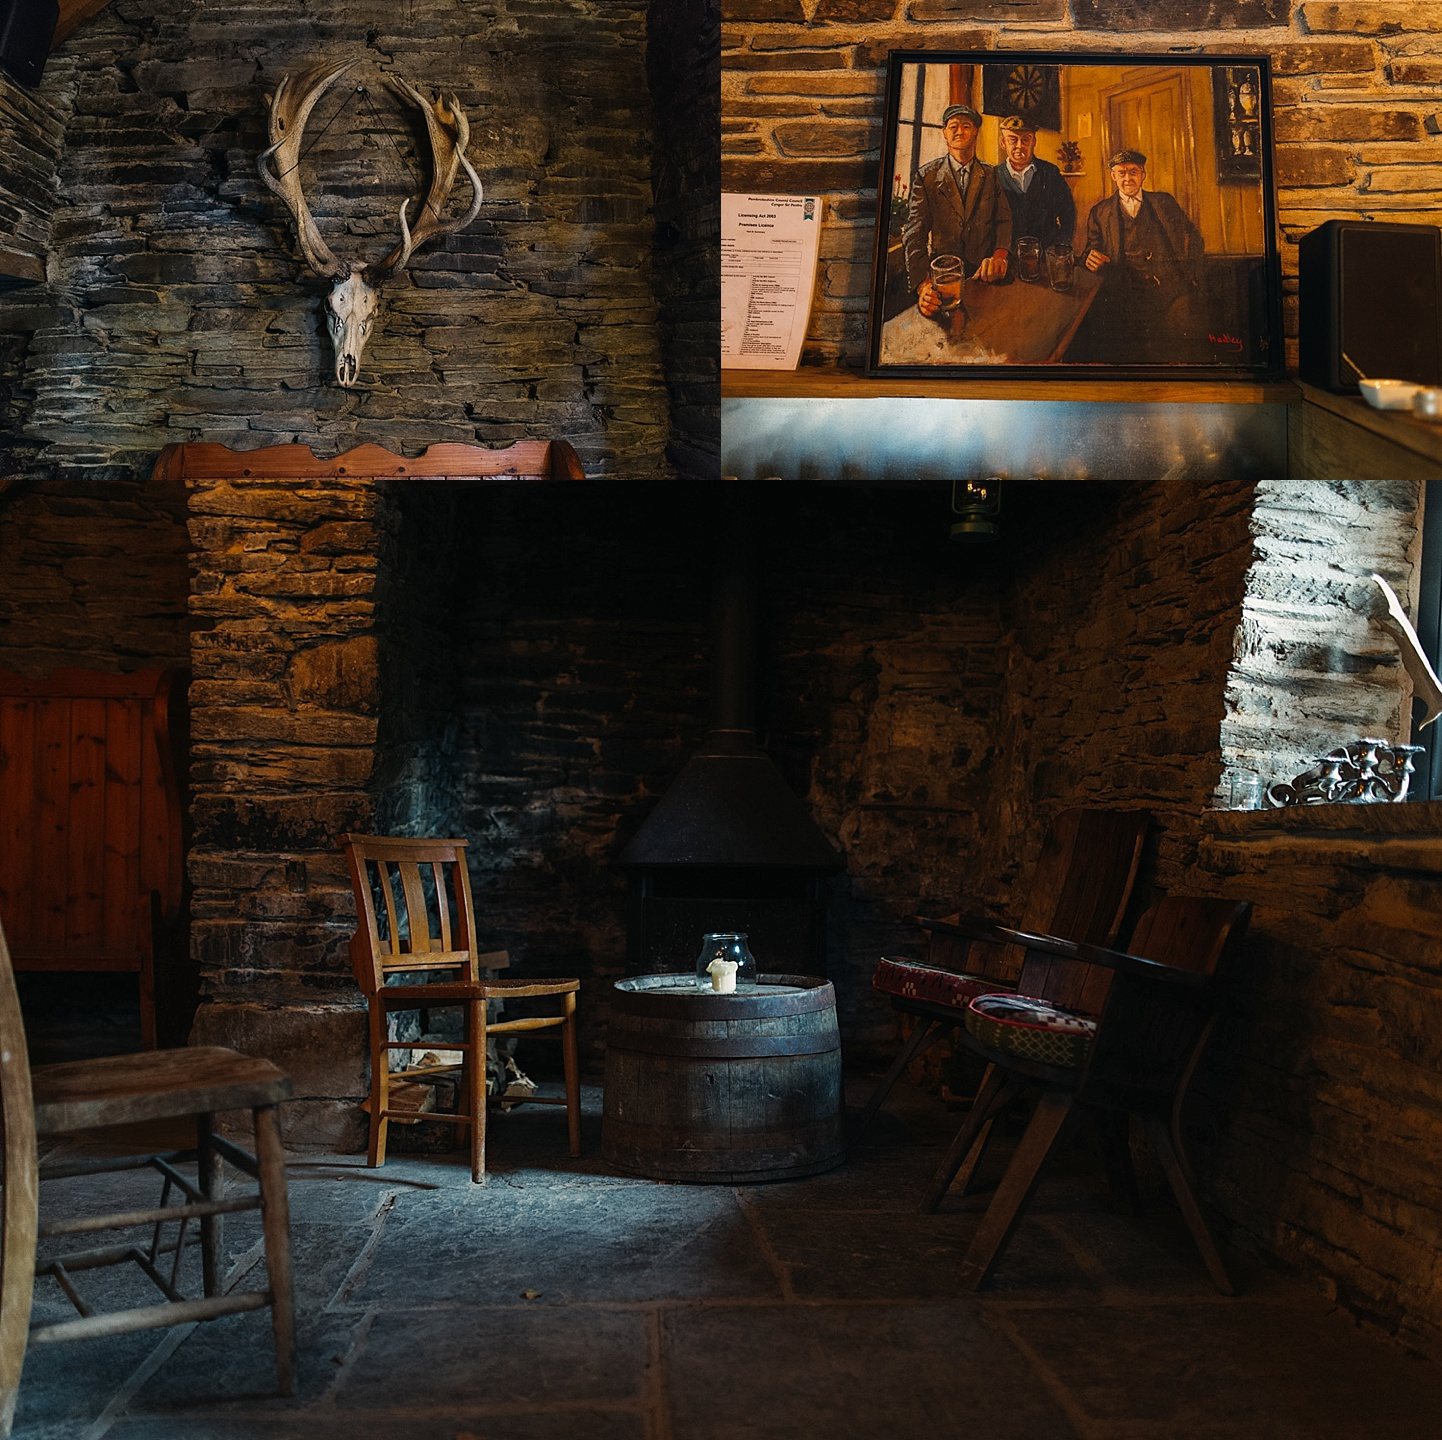 Quirky rustic stone cottage wedding venue in Wales - Fforest wedding photography - Wales alternative wedding photography (c) Babb Photo - alternative wedding photographer